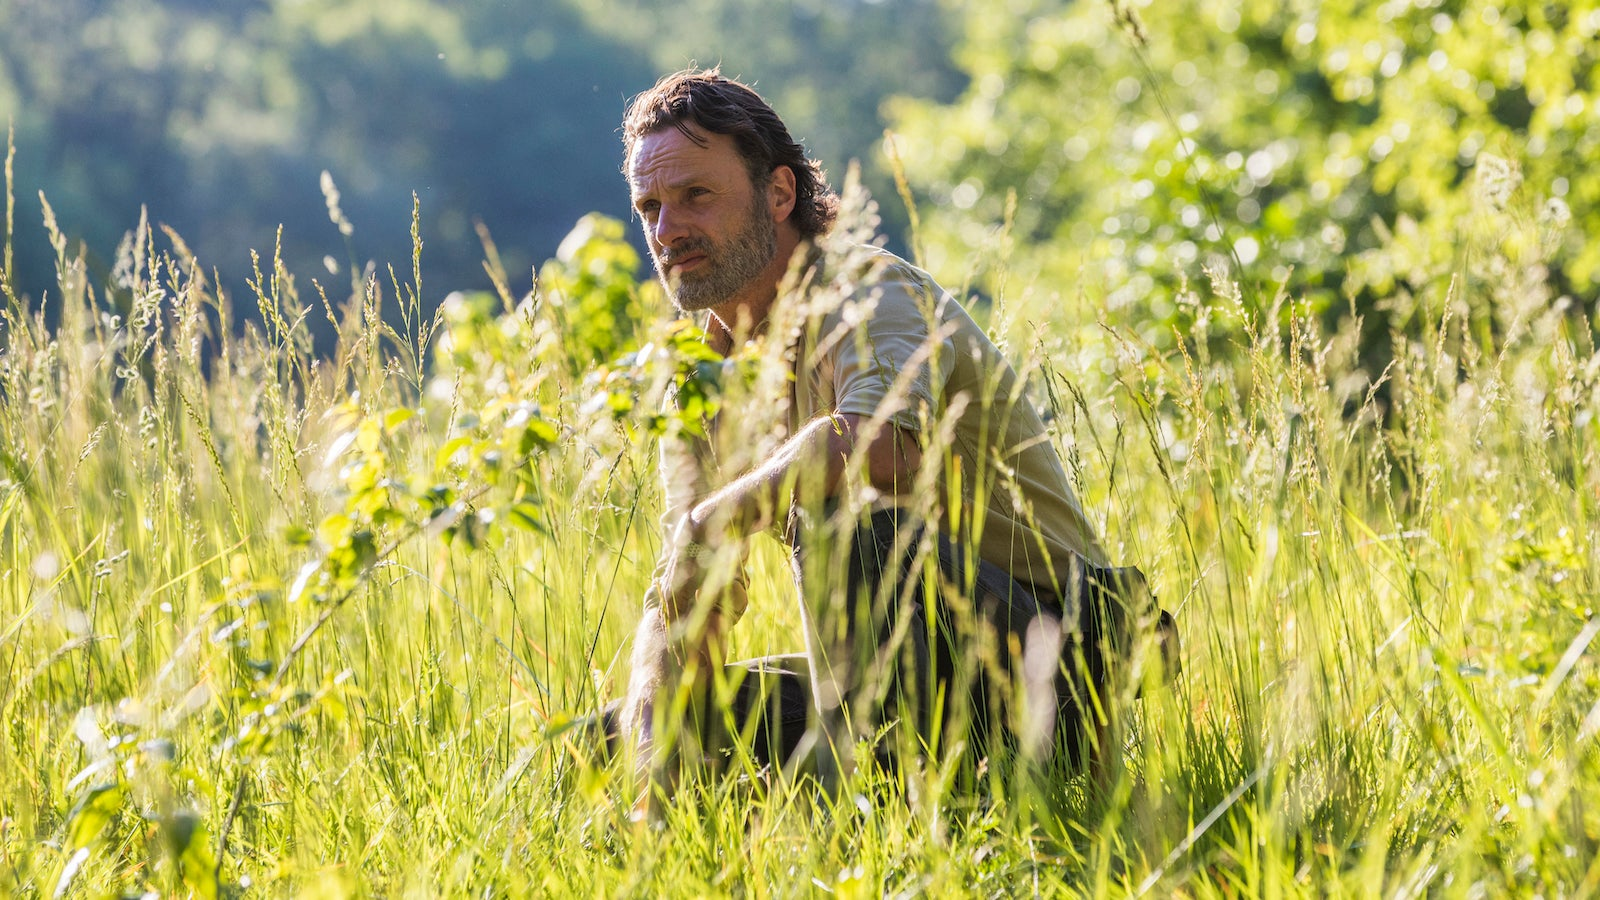 The Walking Dead Is Back And Rick Has Already Messed Up So, So Bad